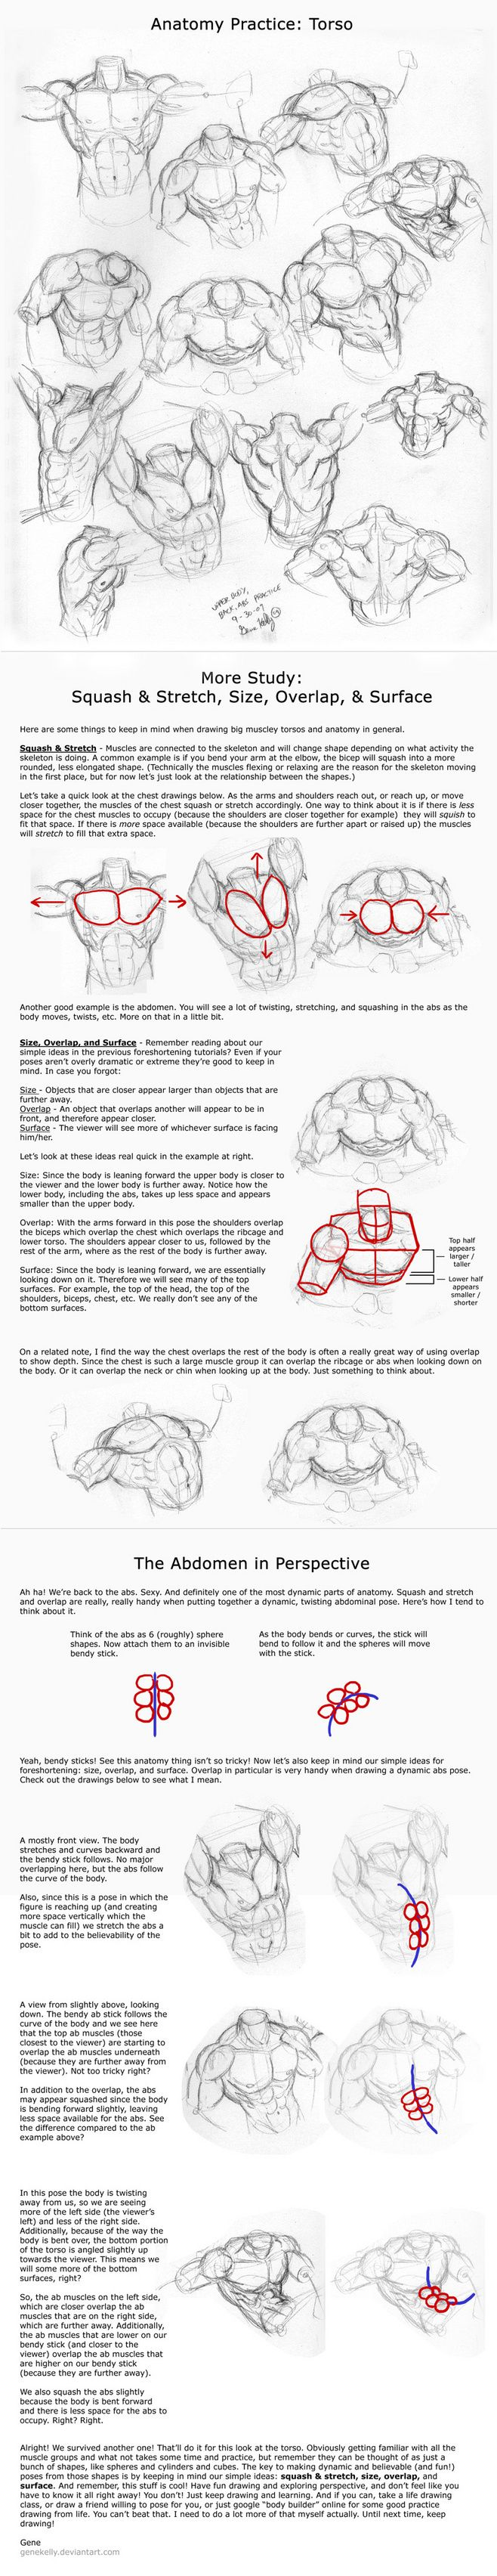 1559 best Human Anatomy images on Pinterest | Sketches, Anatomy and ...